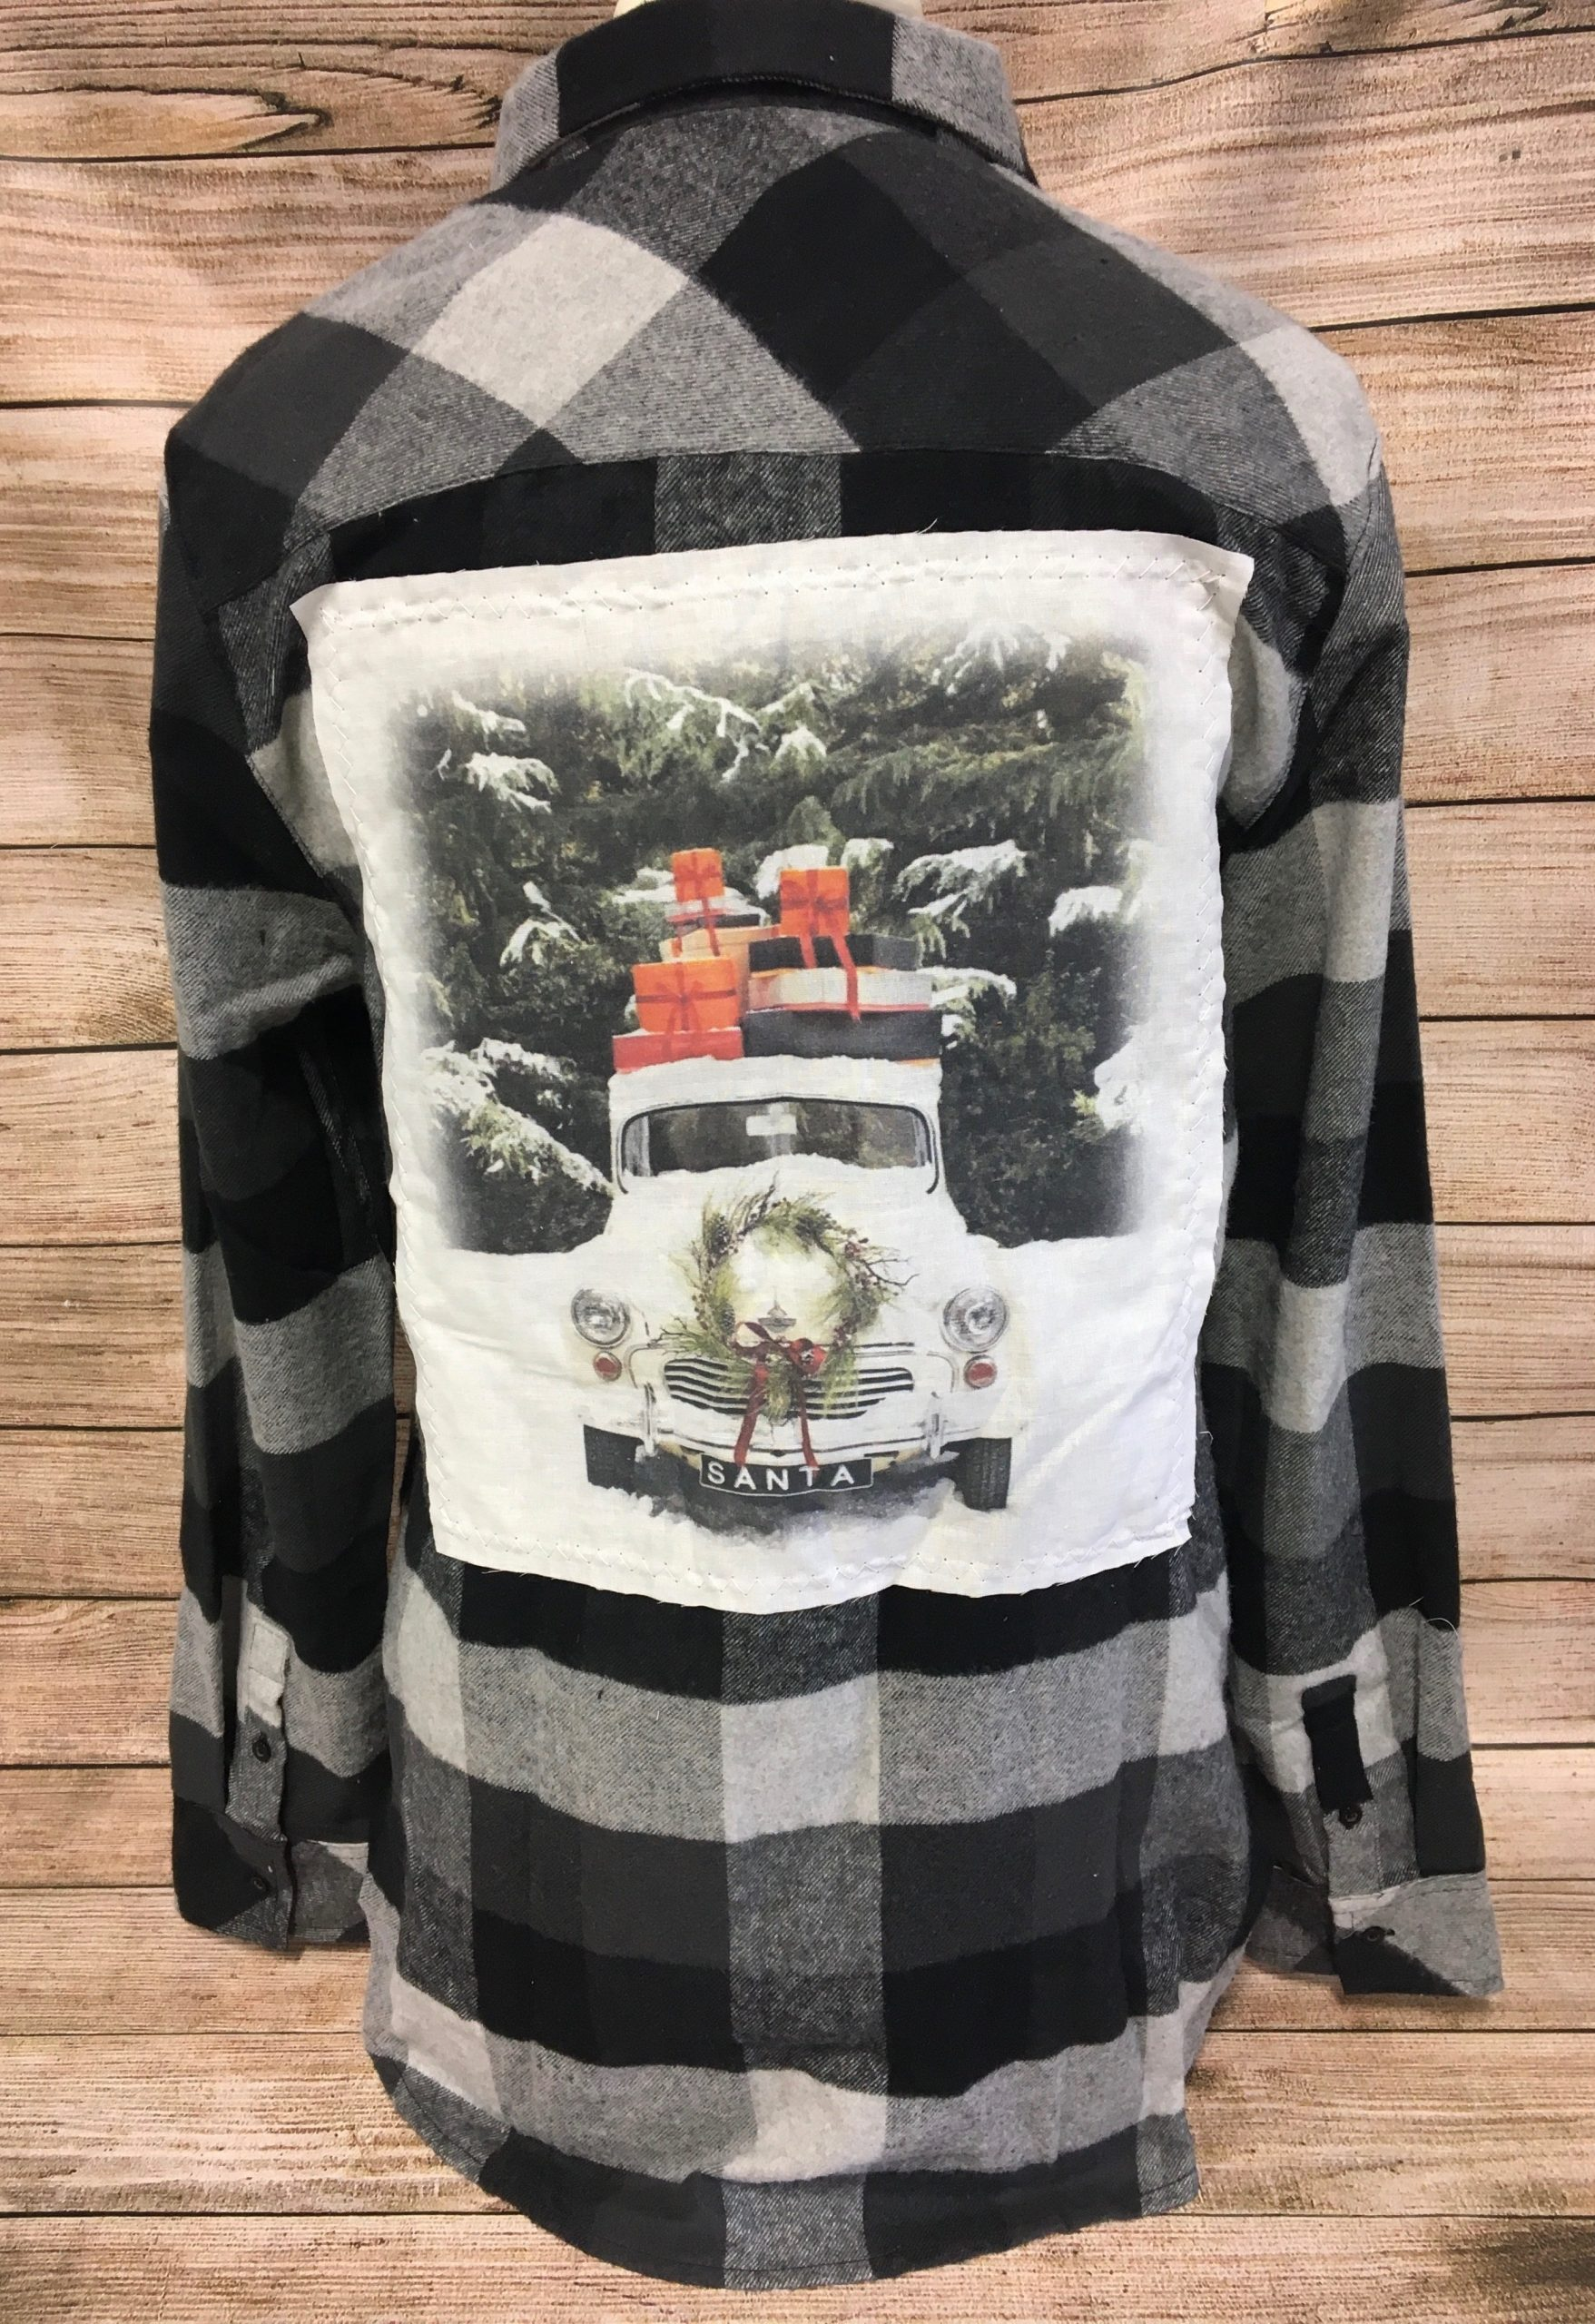 SnowTruck White Patch Black/Gray Flannel Button up Shirt